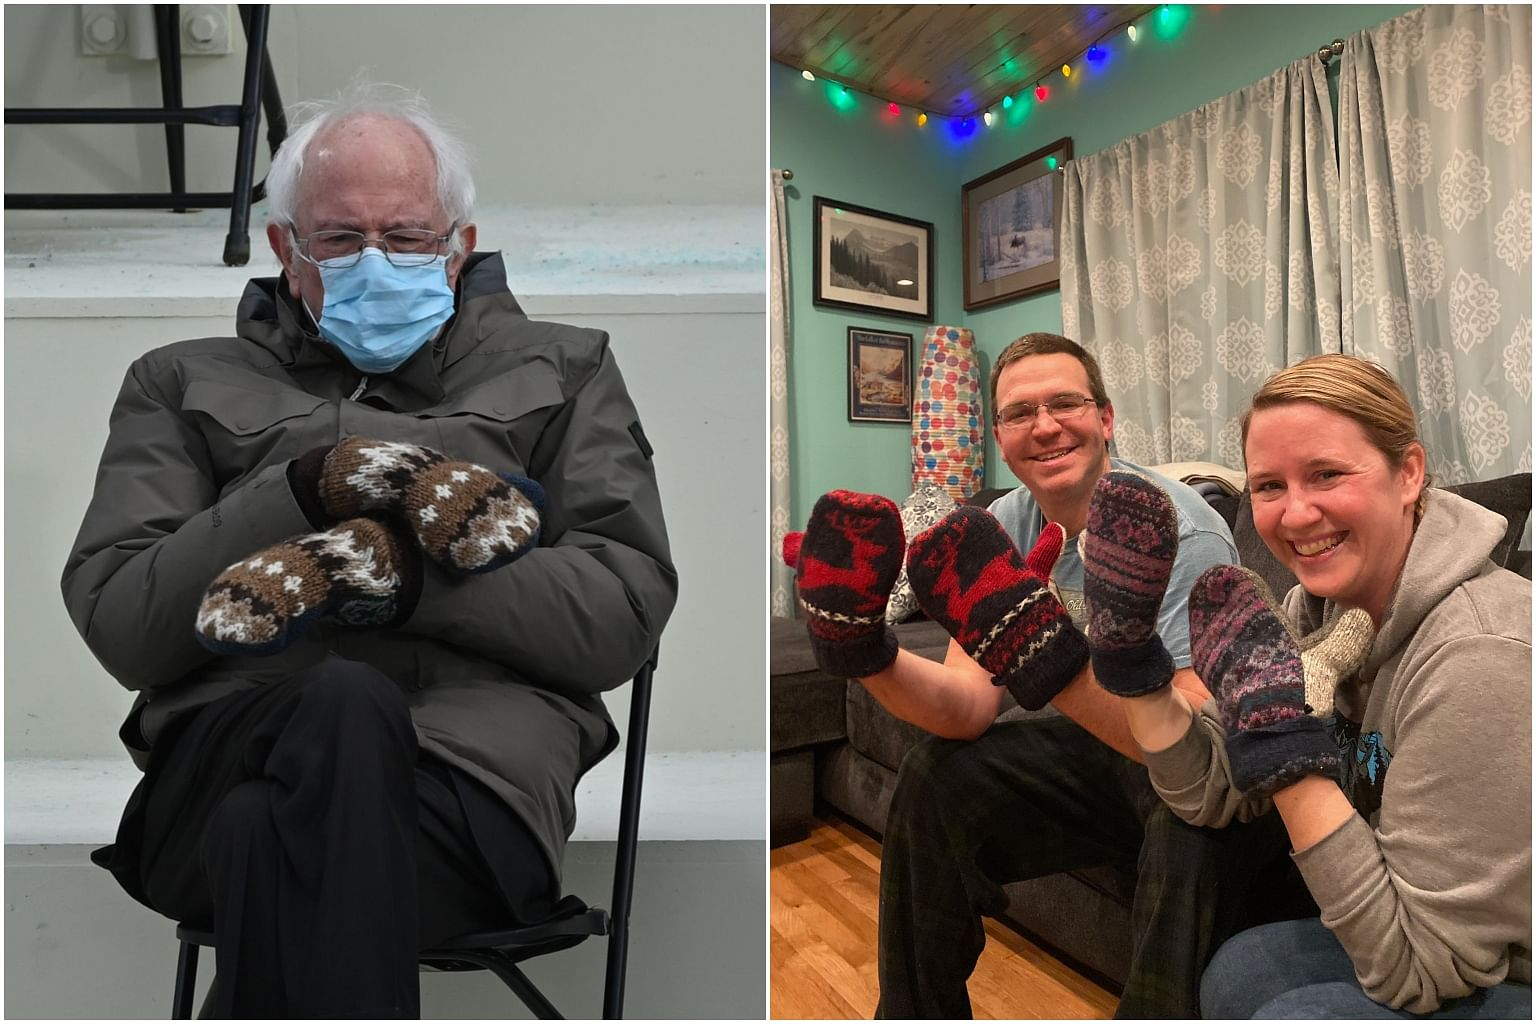 Bernie Sanders Mitten Maker Marvels Over 15 Minutes Of Fame Style News Top Stories The Straits Times